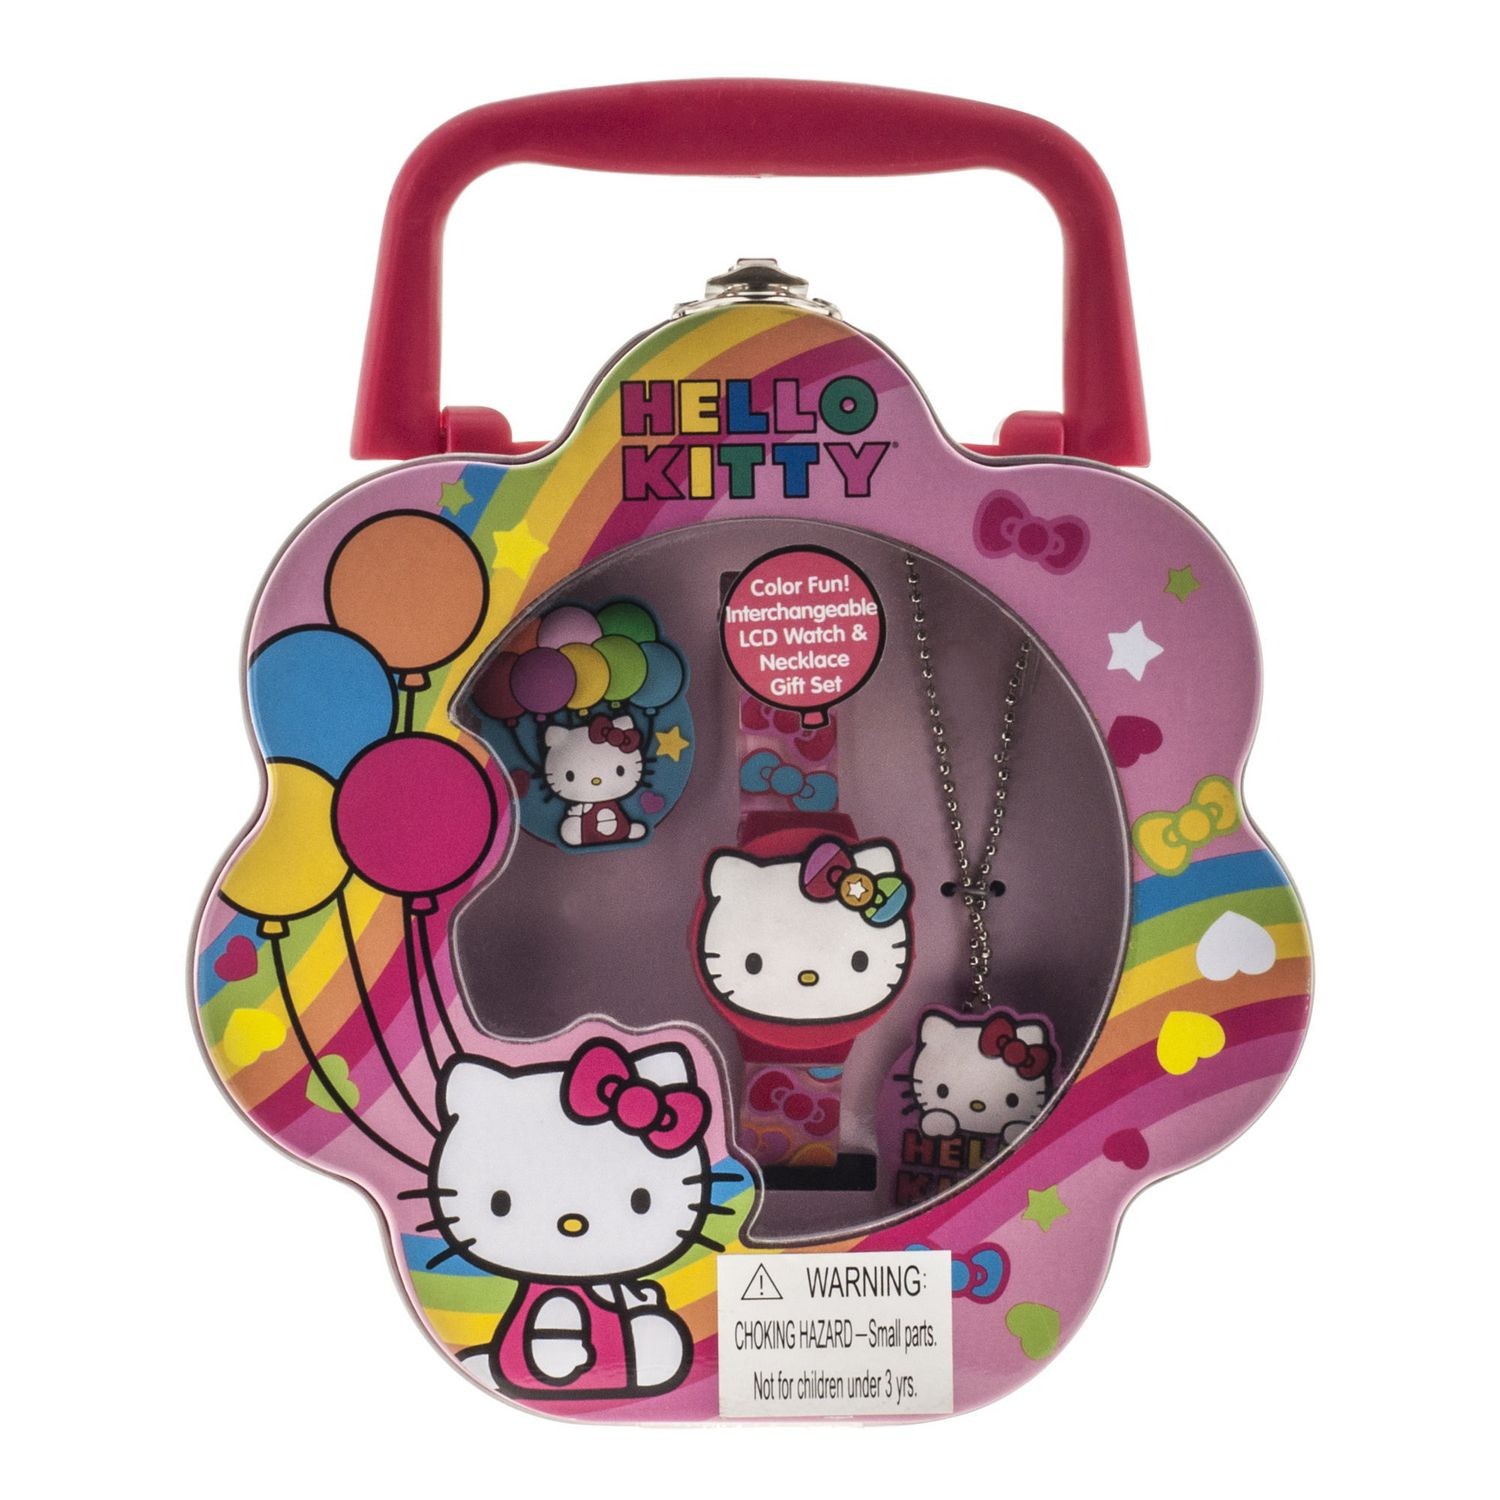 Montre petite fille hello kitty for Chambre enfant fille hello kitty